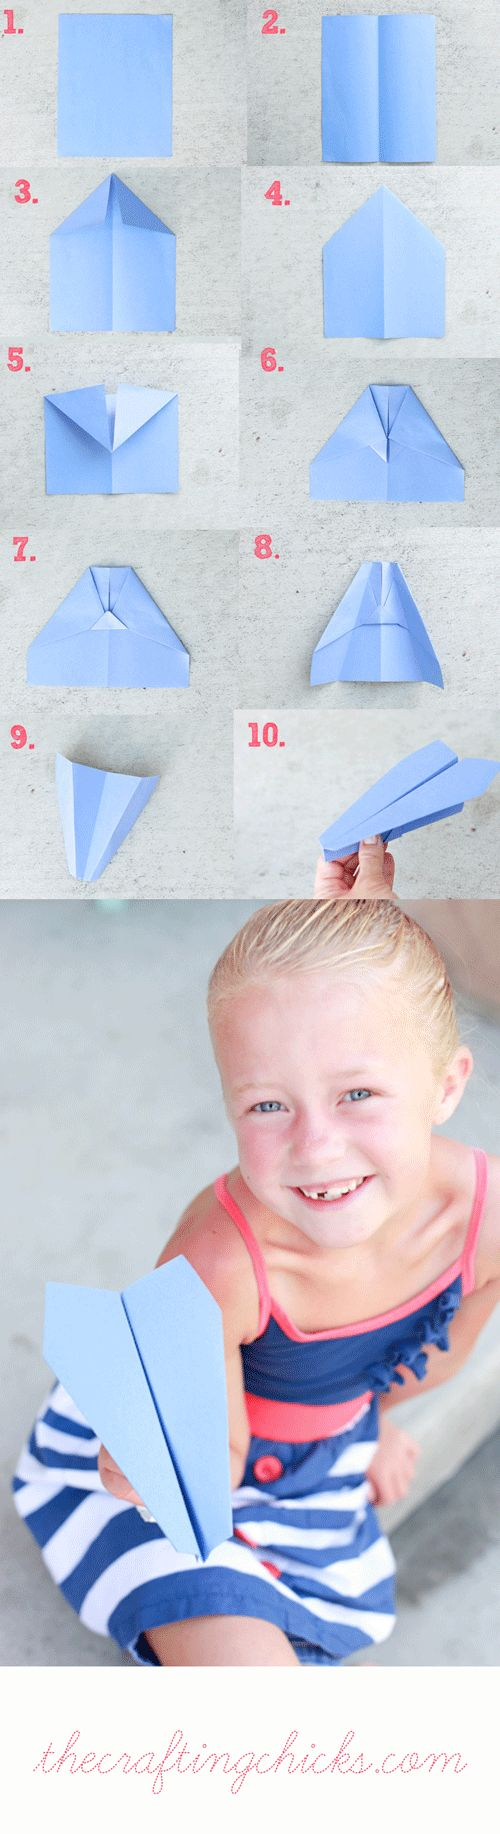 The One Paper Airplane that Every Child Should Know How to Make